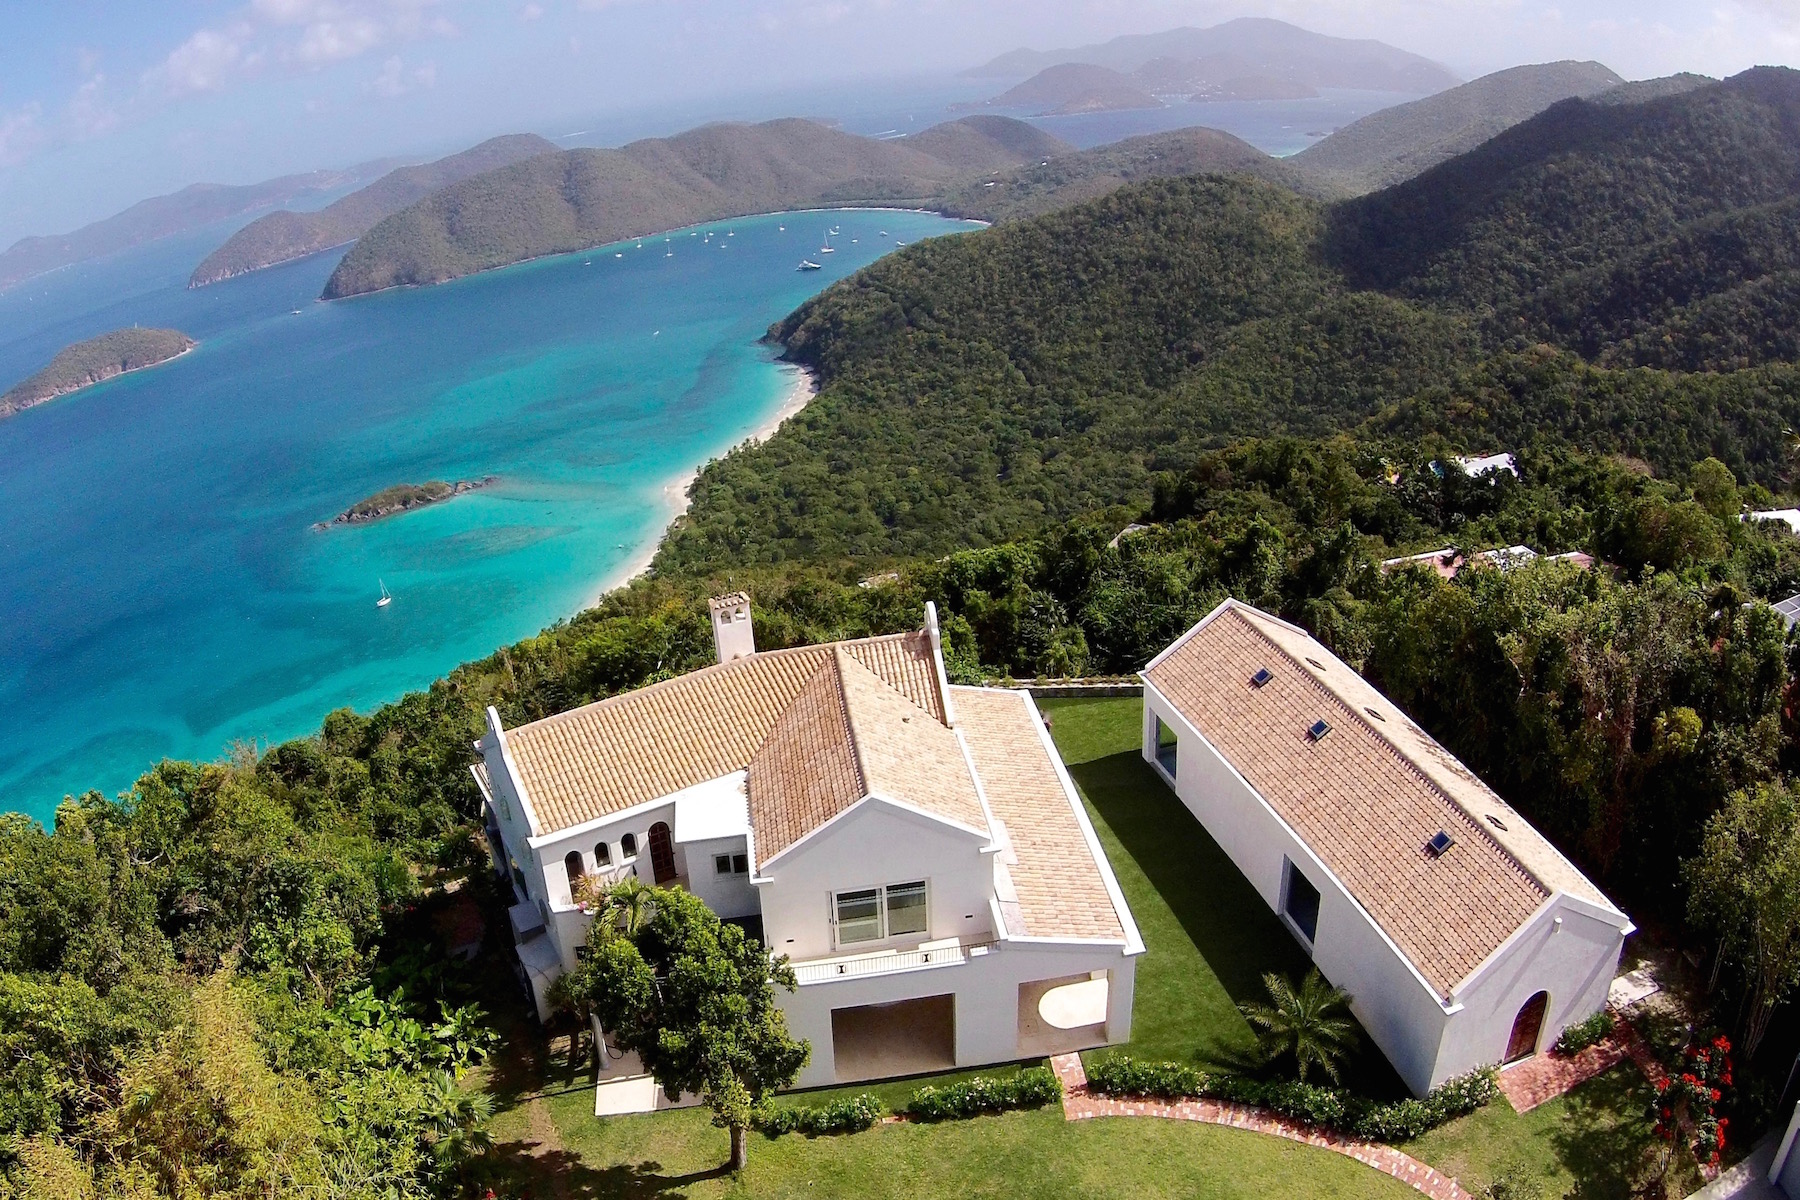 Single Family Home for Sale at Le Chateau 3-1 Catherineberg St John, Virgin Islands 00830 United States Virgin Islands